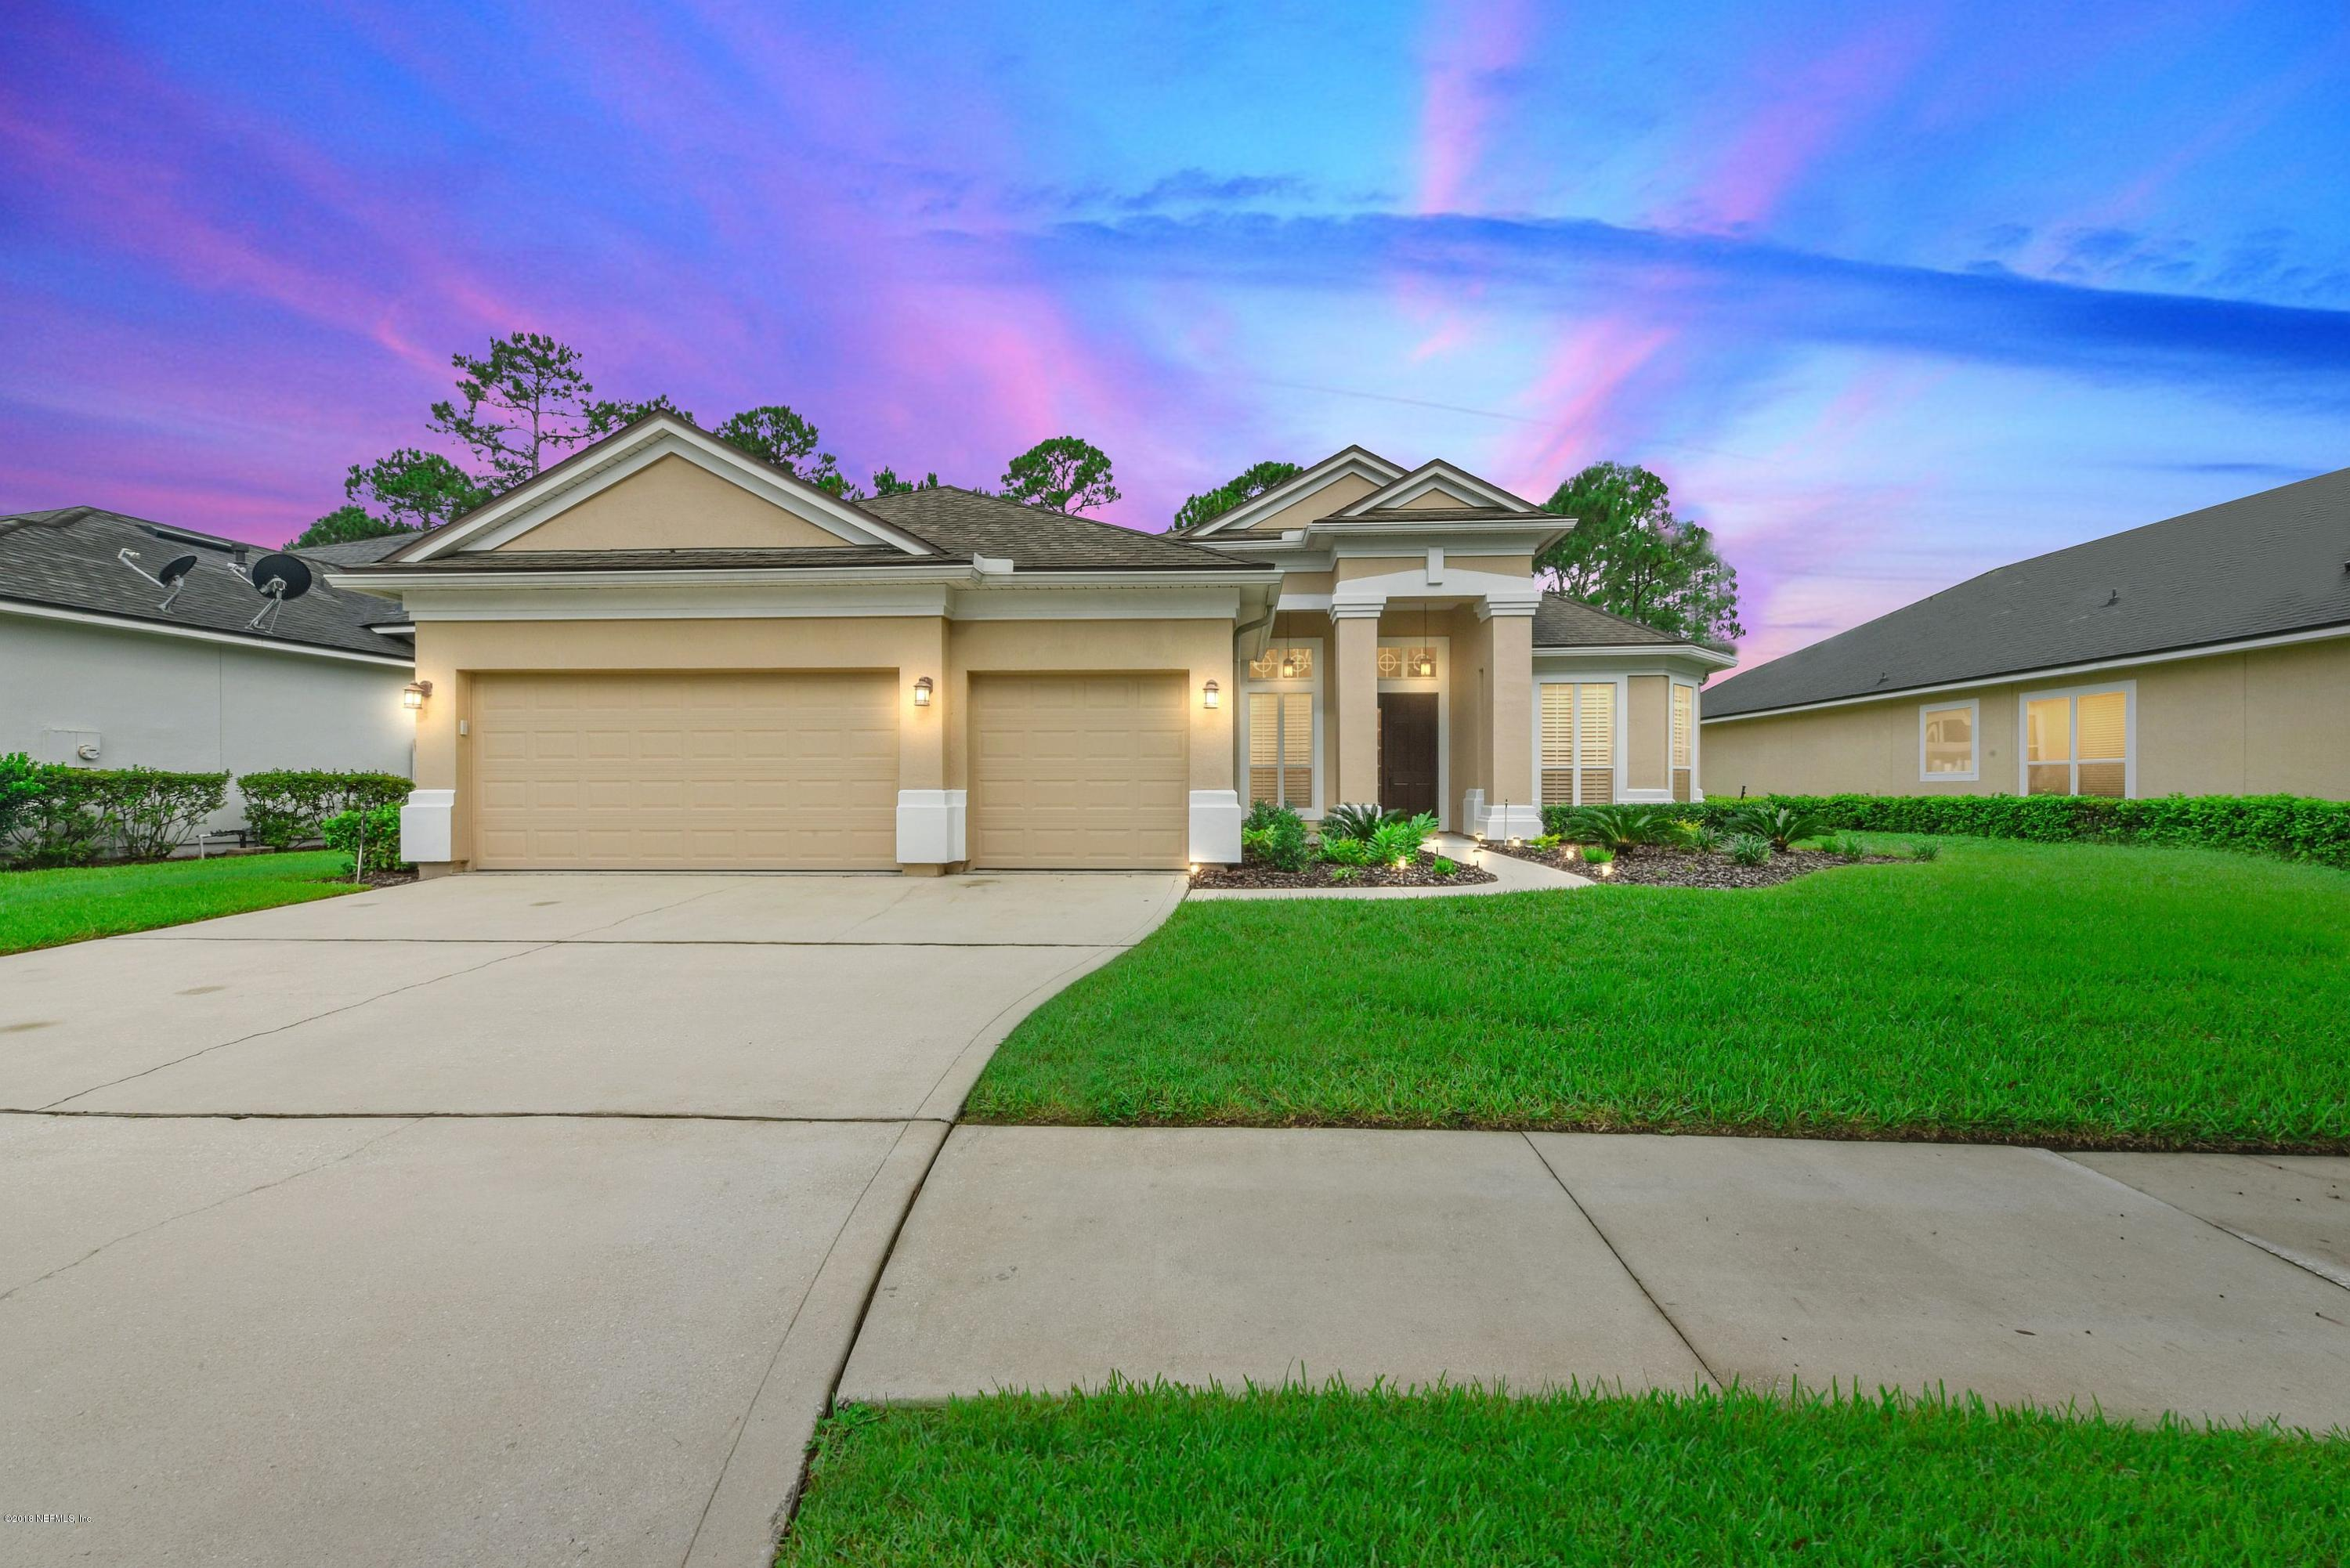 14244 PALMETTO SPRINGS, JACKSONVILLE, FLORIDA 32258, 4 Bedrooms Bedrooms, ,3 BathroomsBathrooms,Residential - single family,For sale,PALMETTO SPRINGS,950345